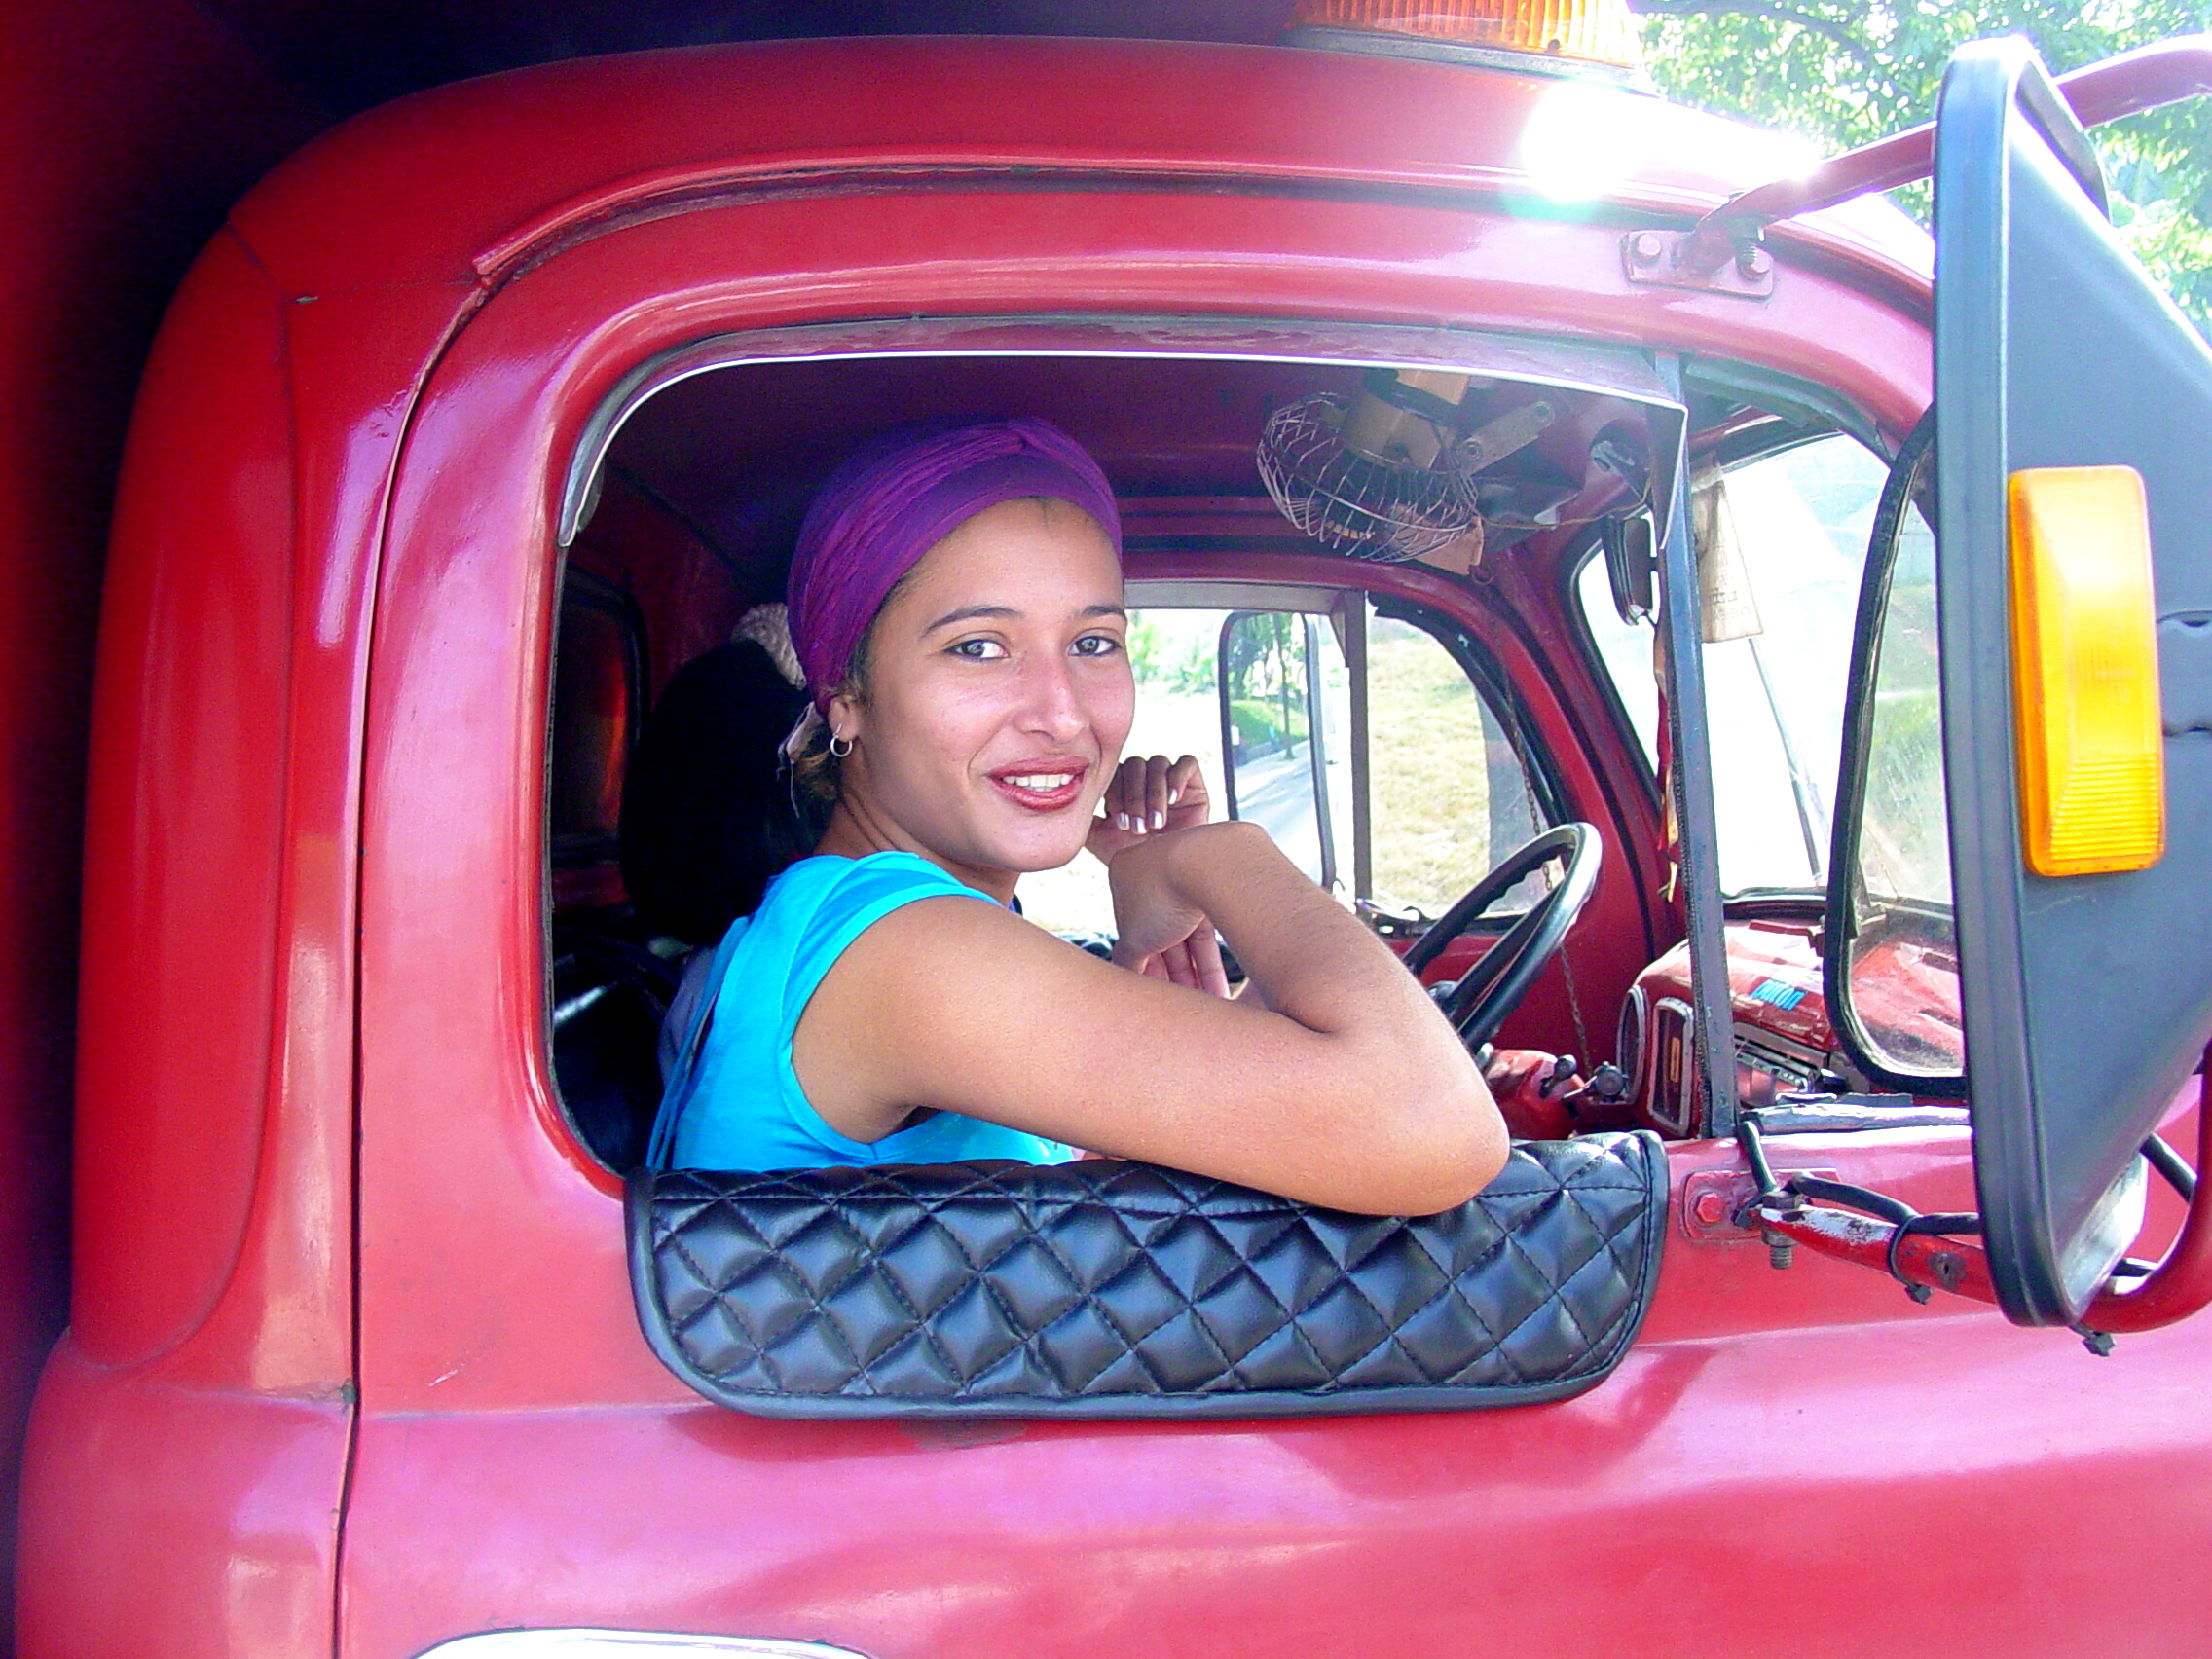 https://upload.wikimedia.org/wikipedia/commons/3/39/Woman_in_Truck_Window_-_Holguin_-_Cuba.jpg